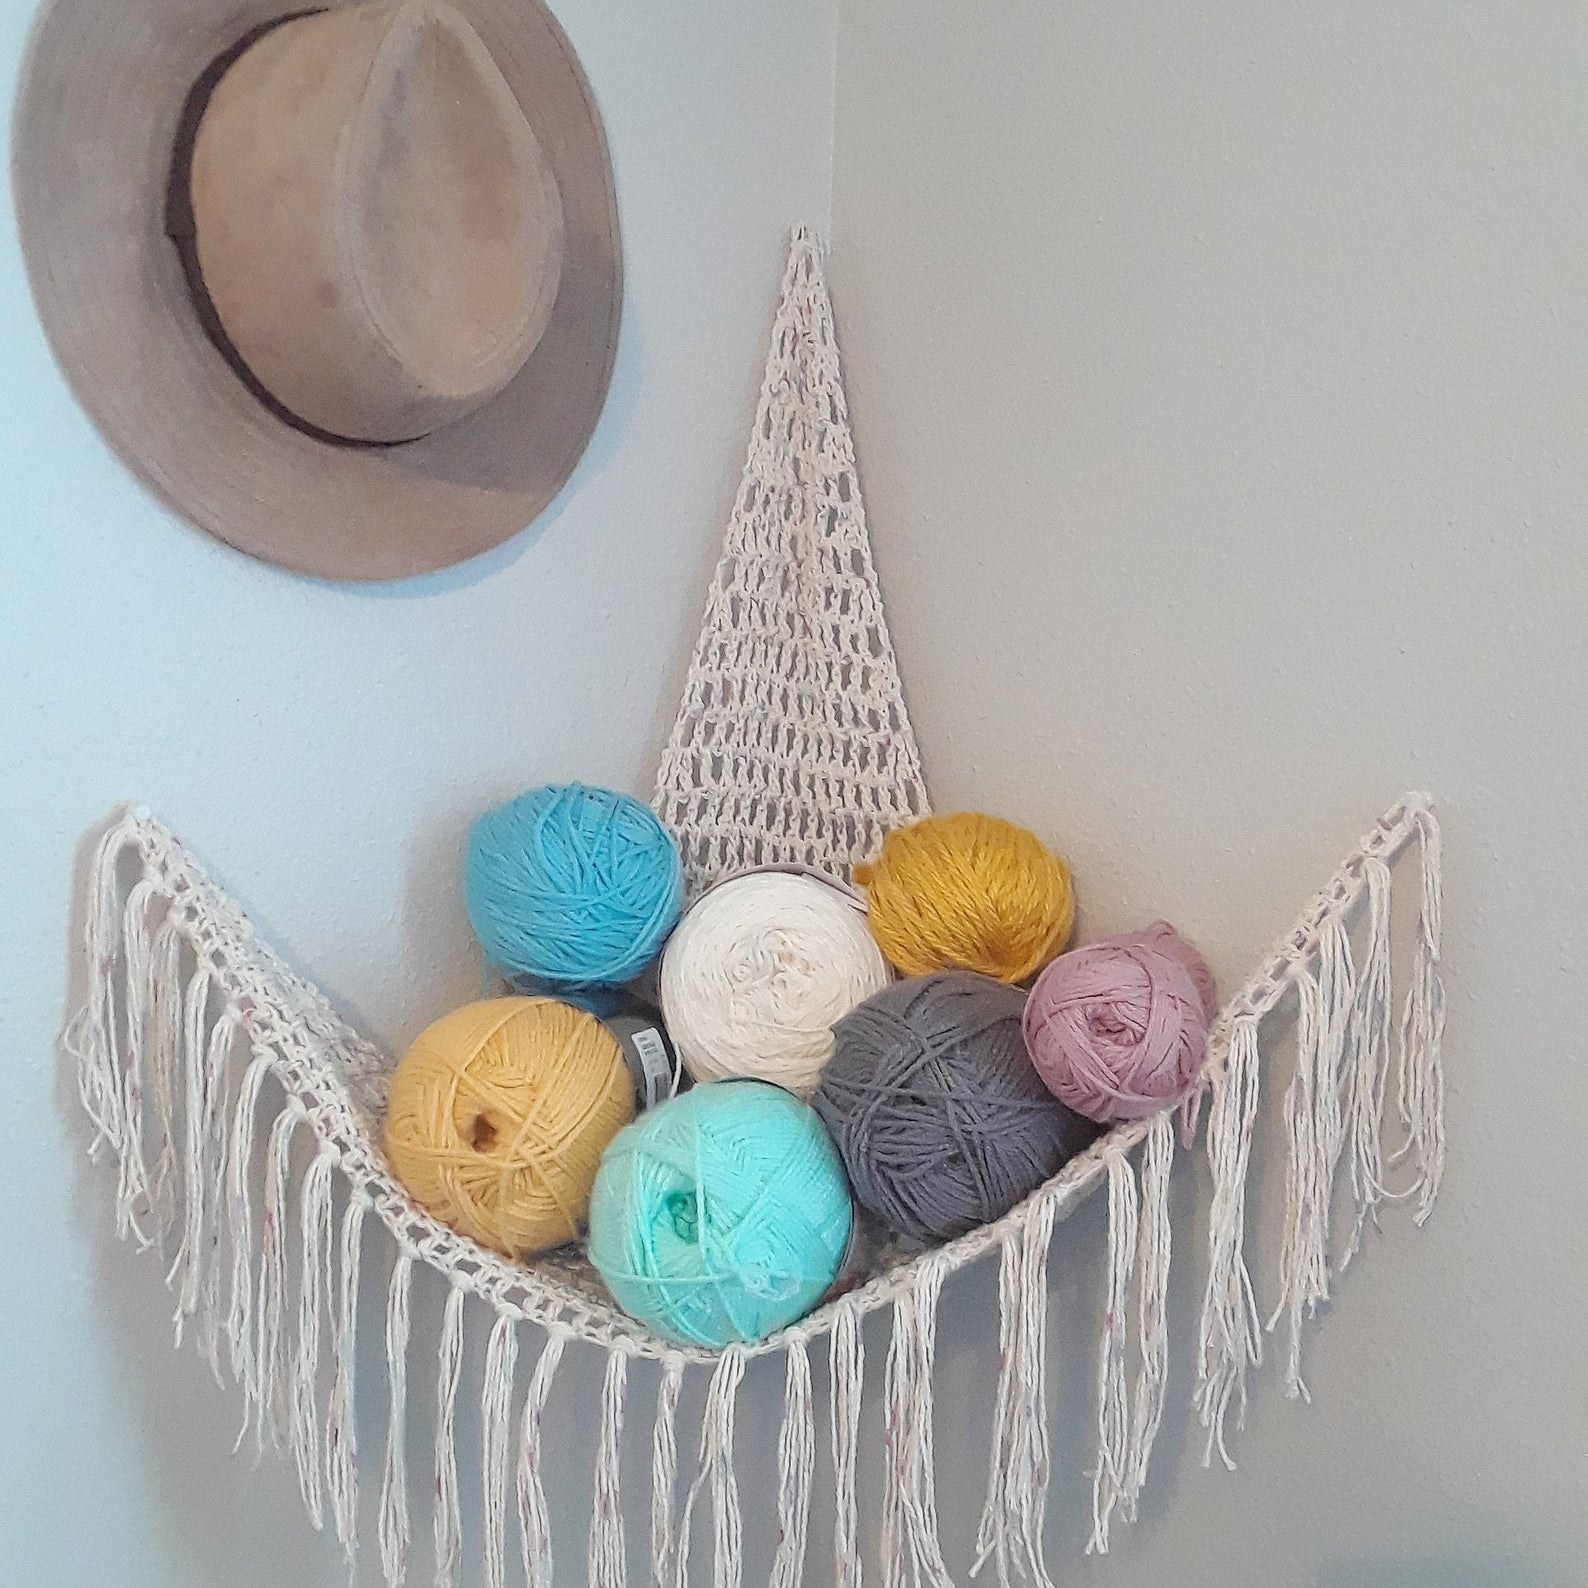 crocheted triangle with fringe attached to a wall corner holding several balls of yarn